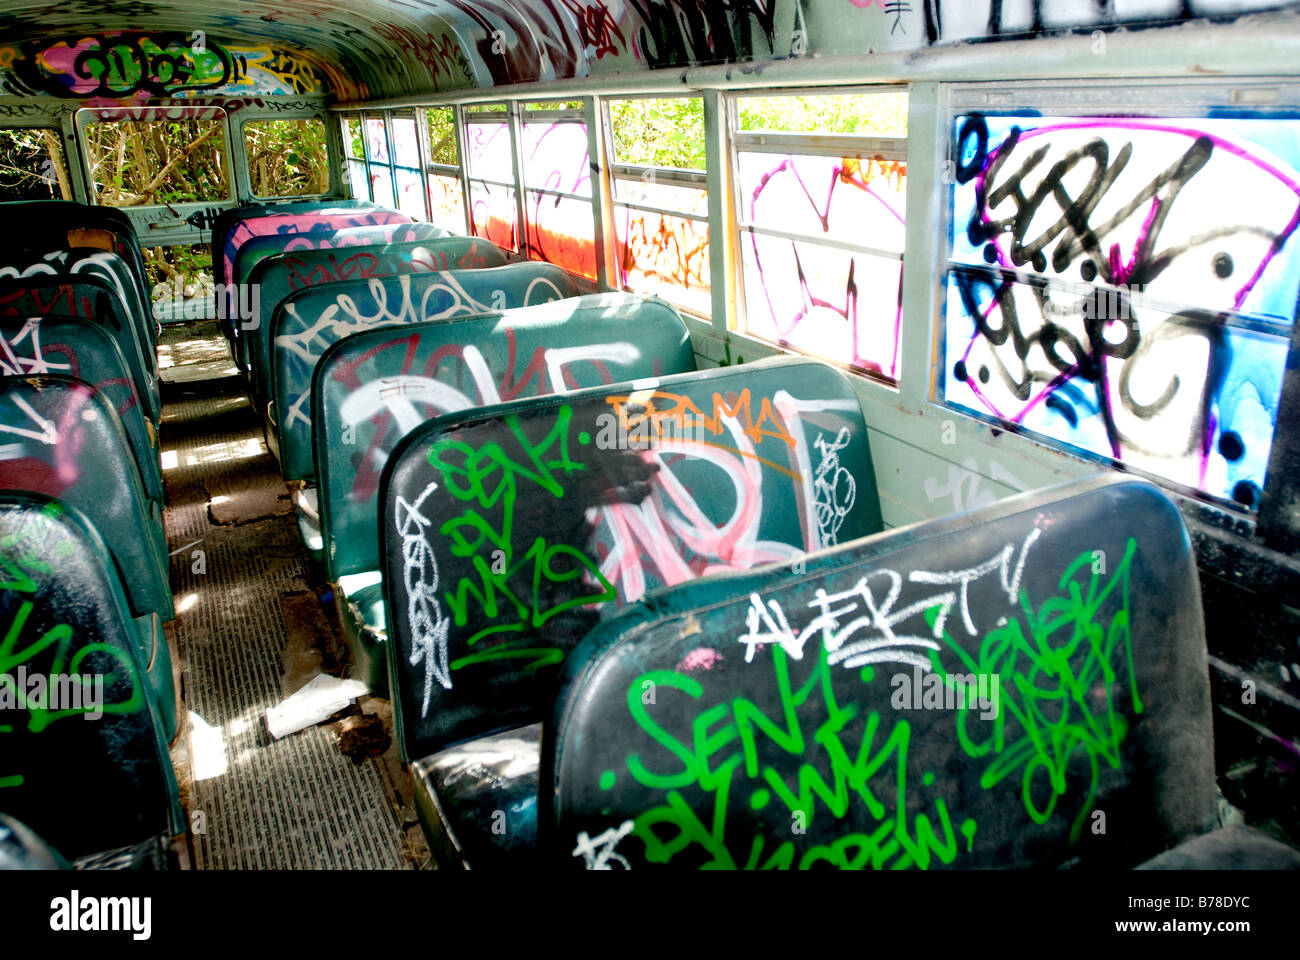 Colorful spray painted graffitti in old abandoned school bus, Miami, Florida. - Stock Image